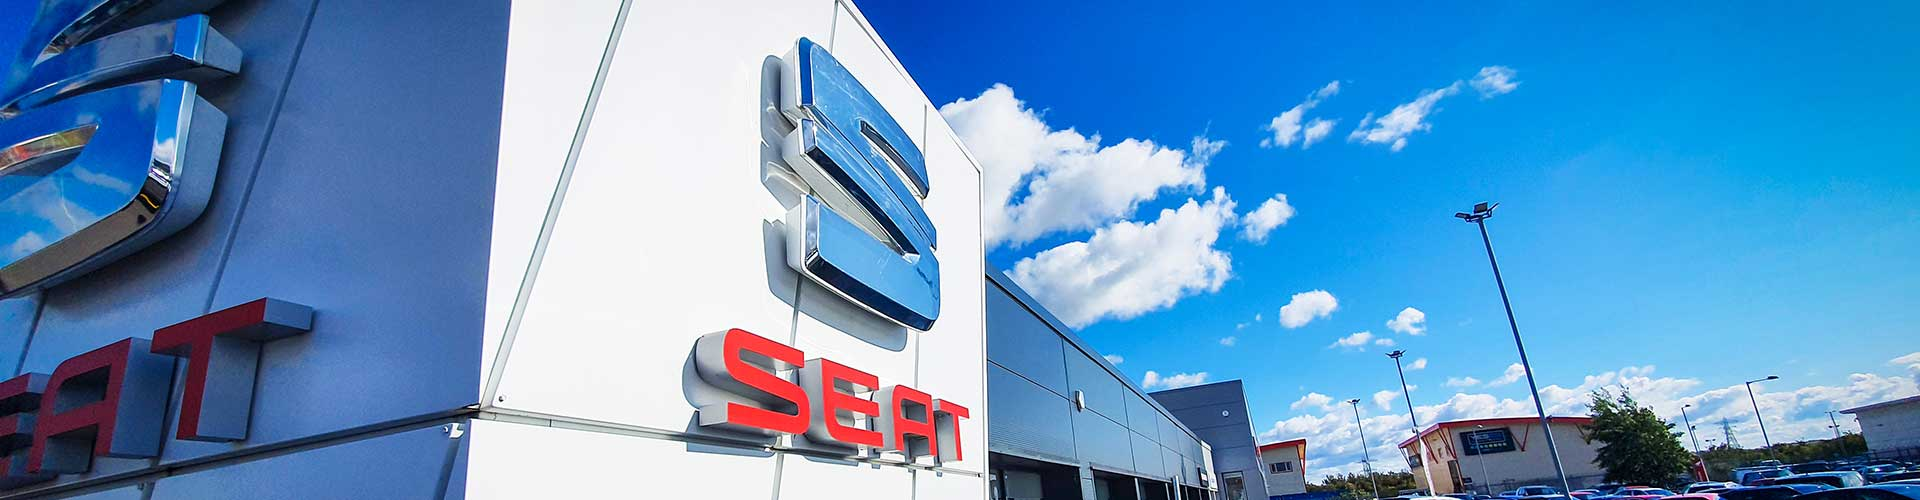 Blackpool SEAT Dealership